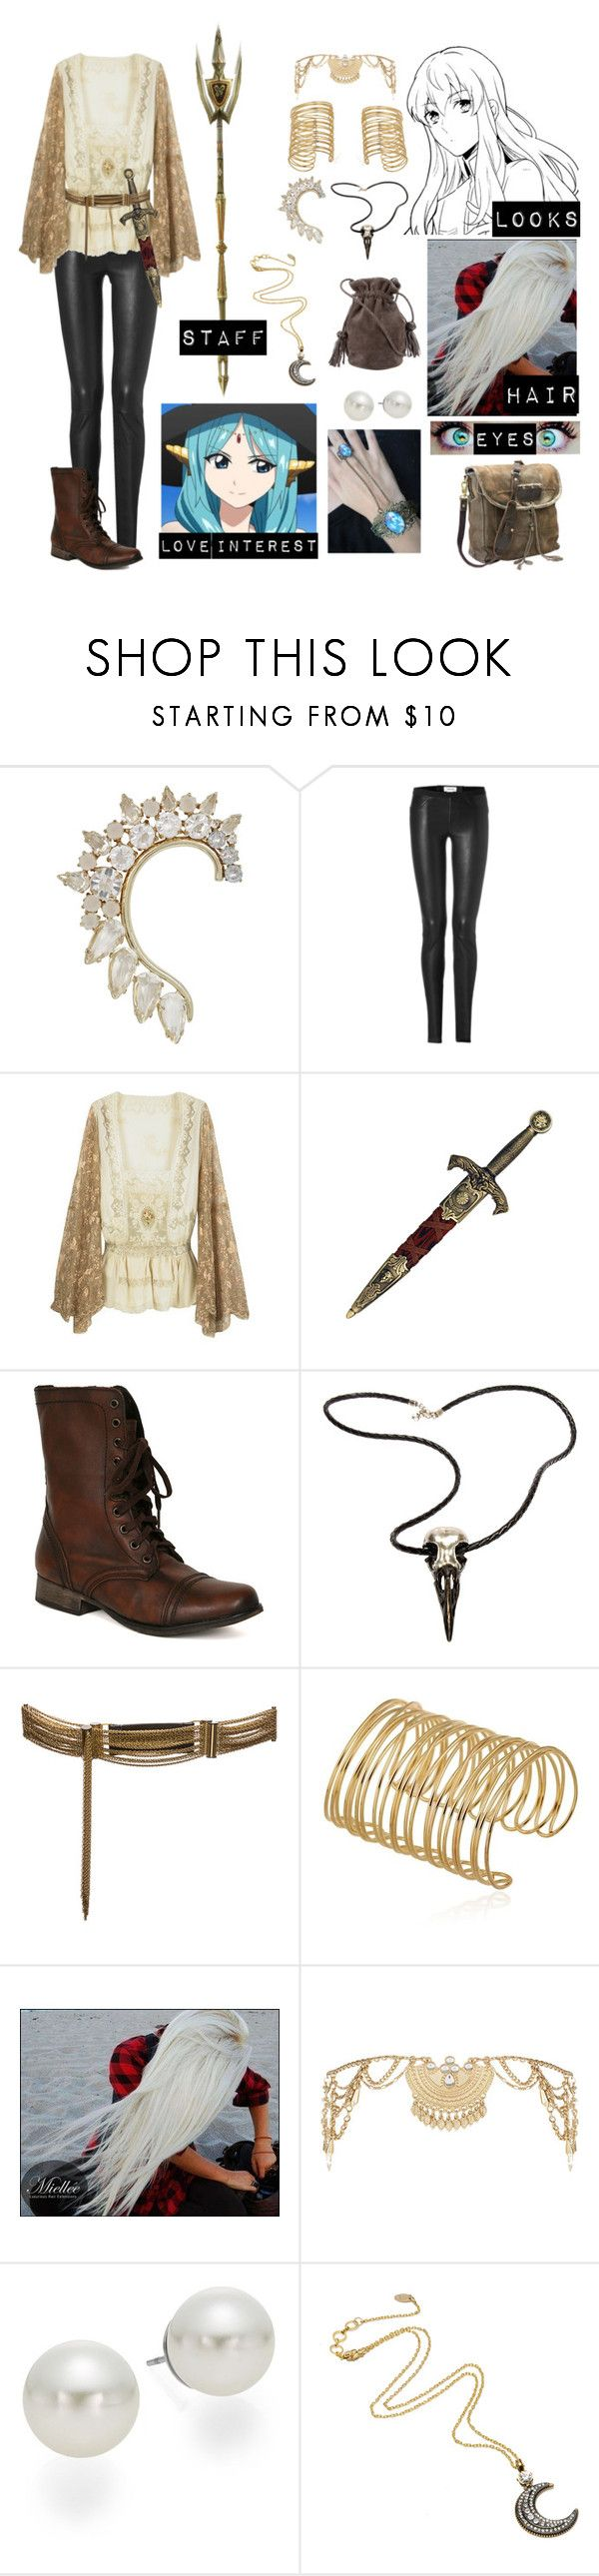 """Magi oc 3"" by gglloyd ❤ liked on Polyvore featuring BCBGMAXAZRIA, Helmut Lang, KING, Steve Madden, Raven Denim, Lanvin, Miss Selfridge, AK Anne Klein, Amrita Singh and Hunting Season"